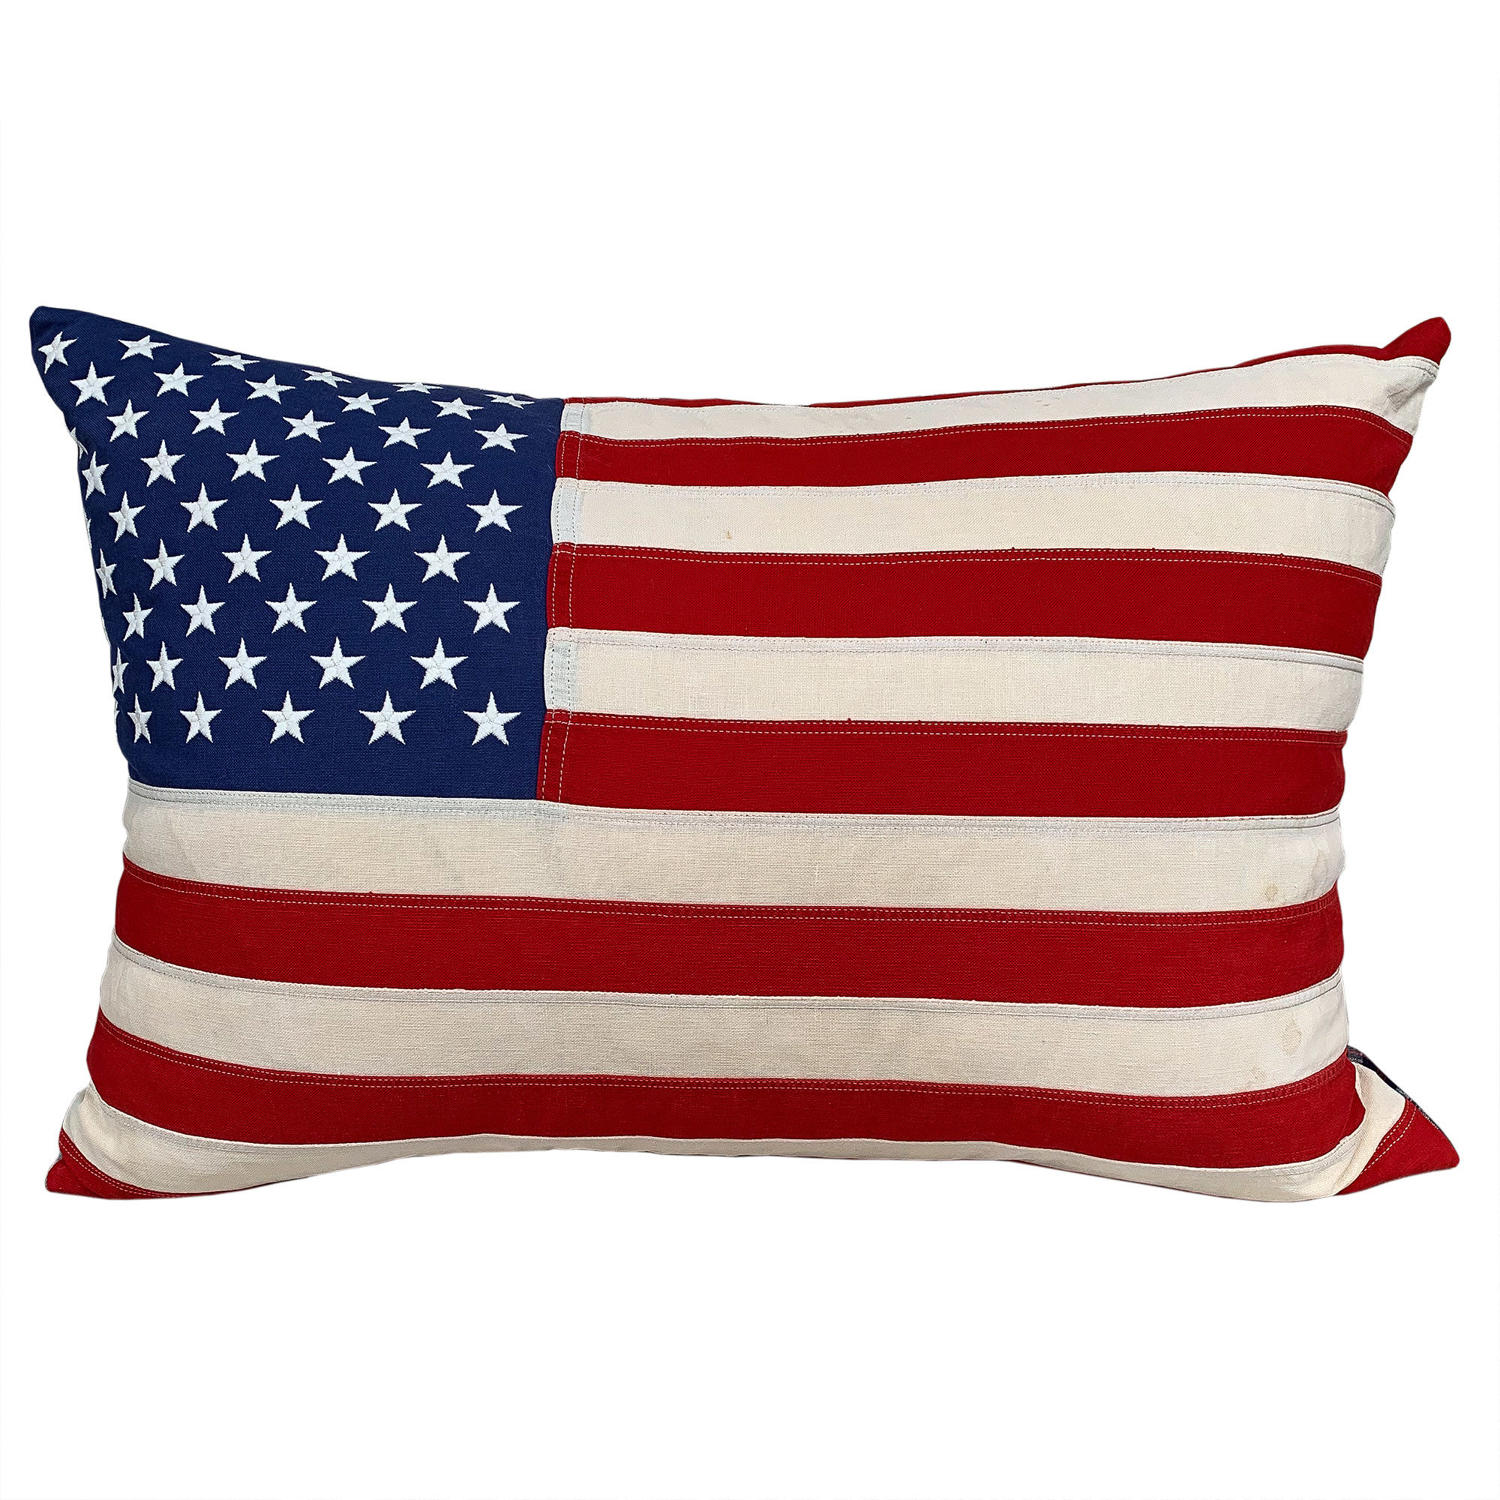 Large Old Glory cushion